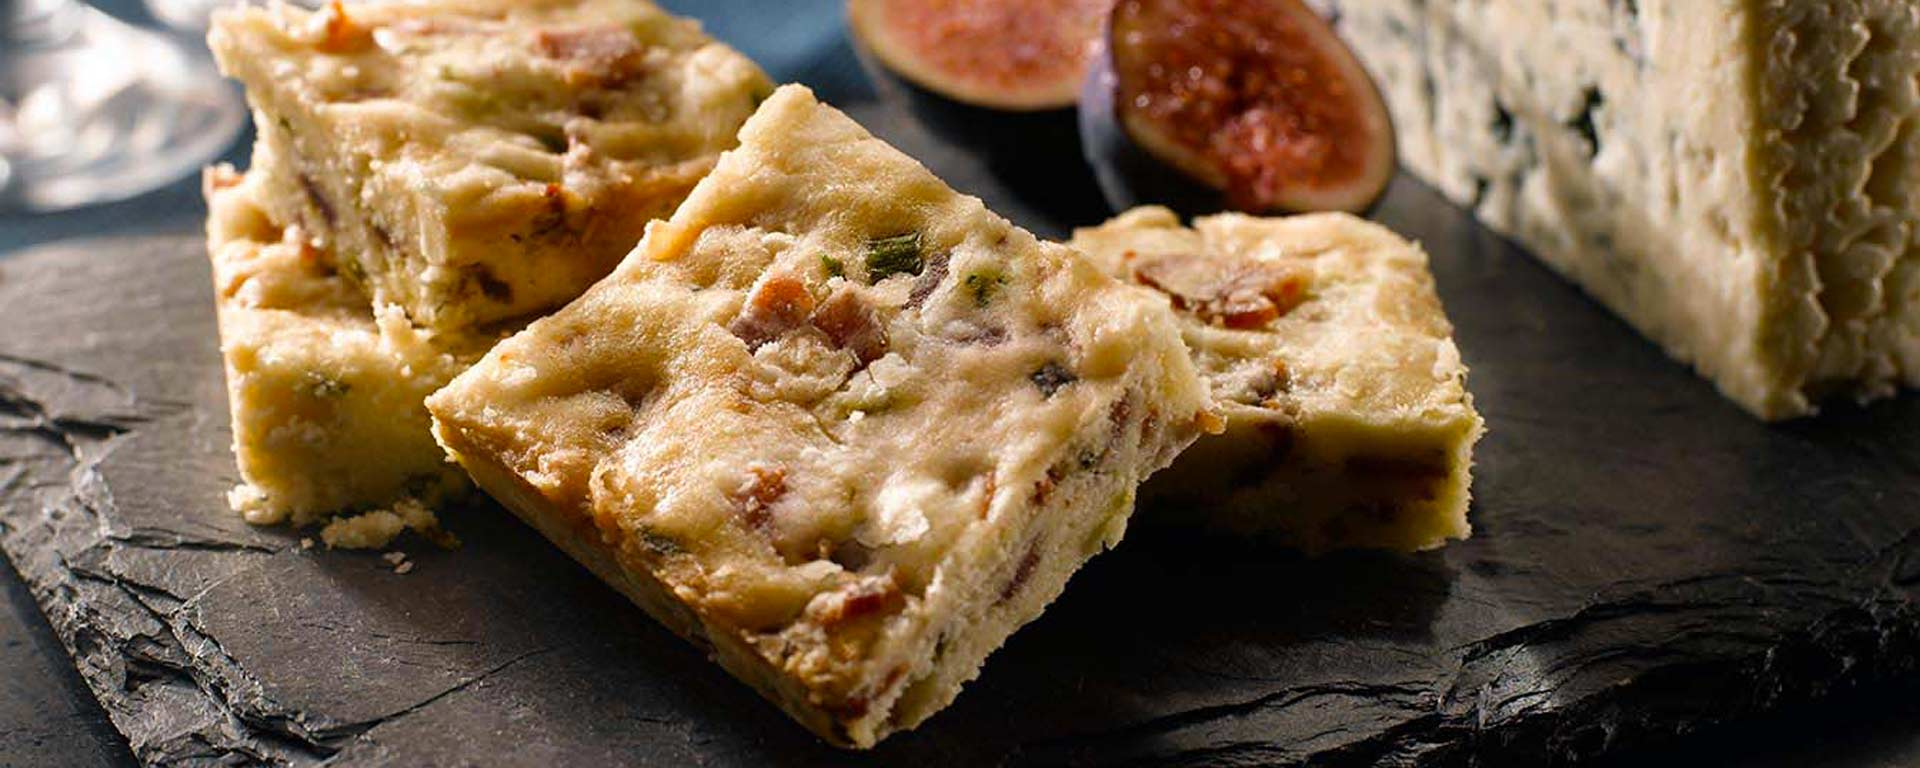 Photo for - Maple Glazed Bacon and Chive Shortbread